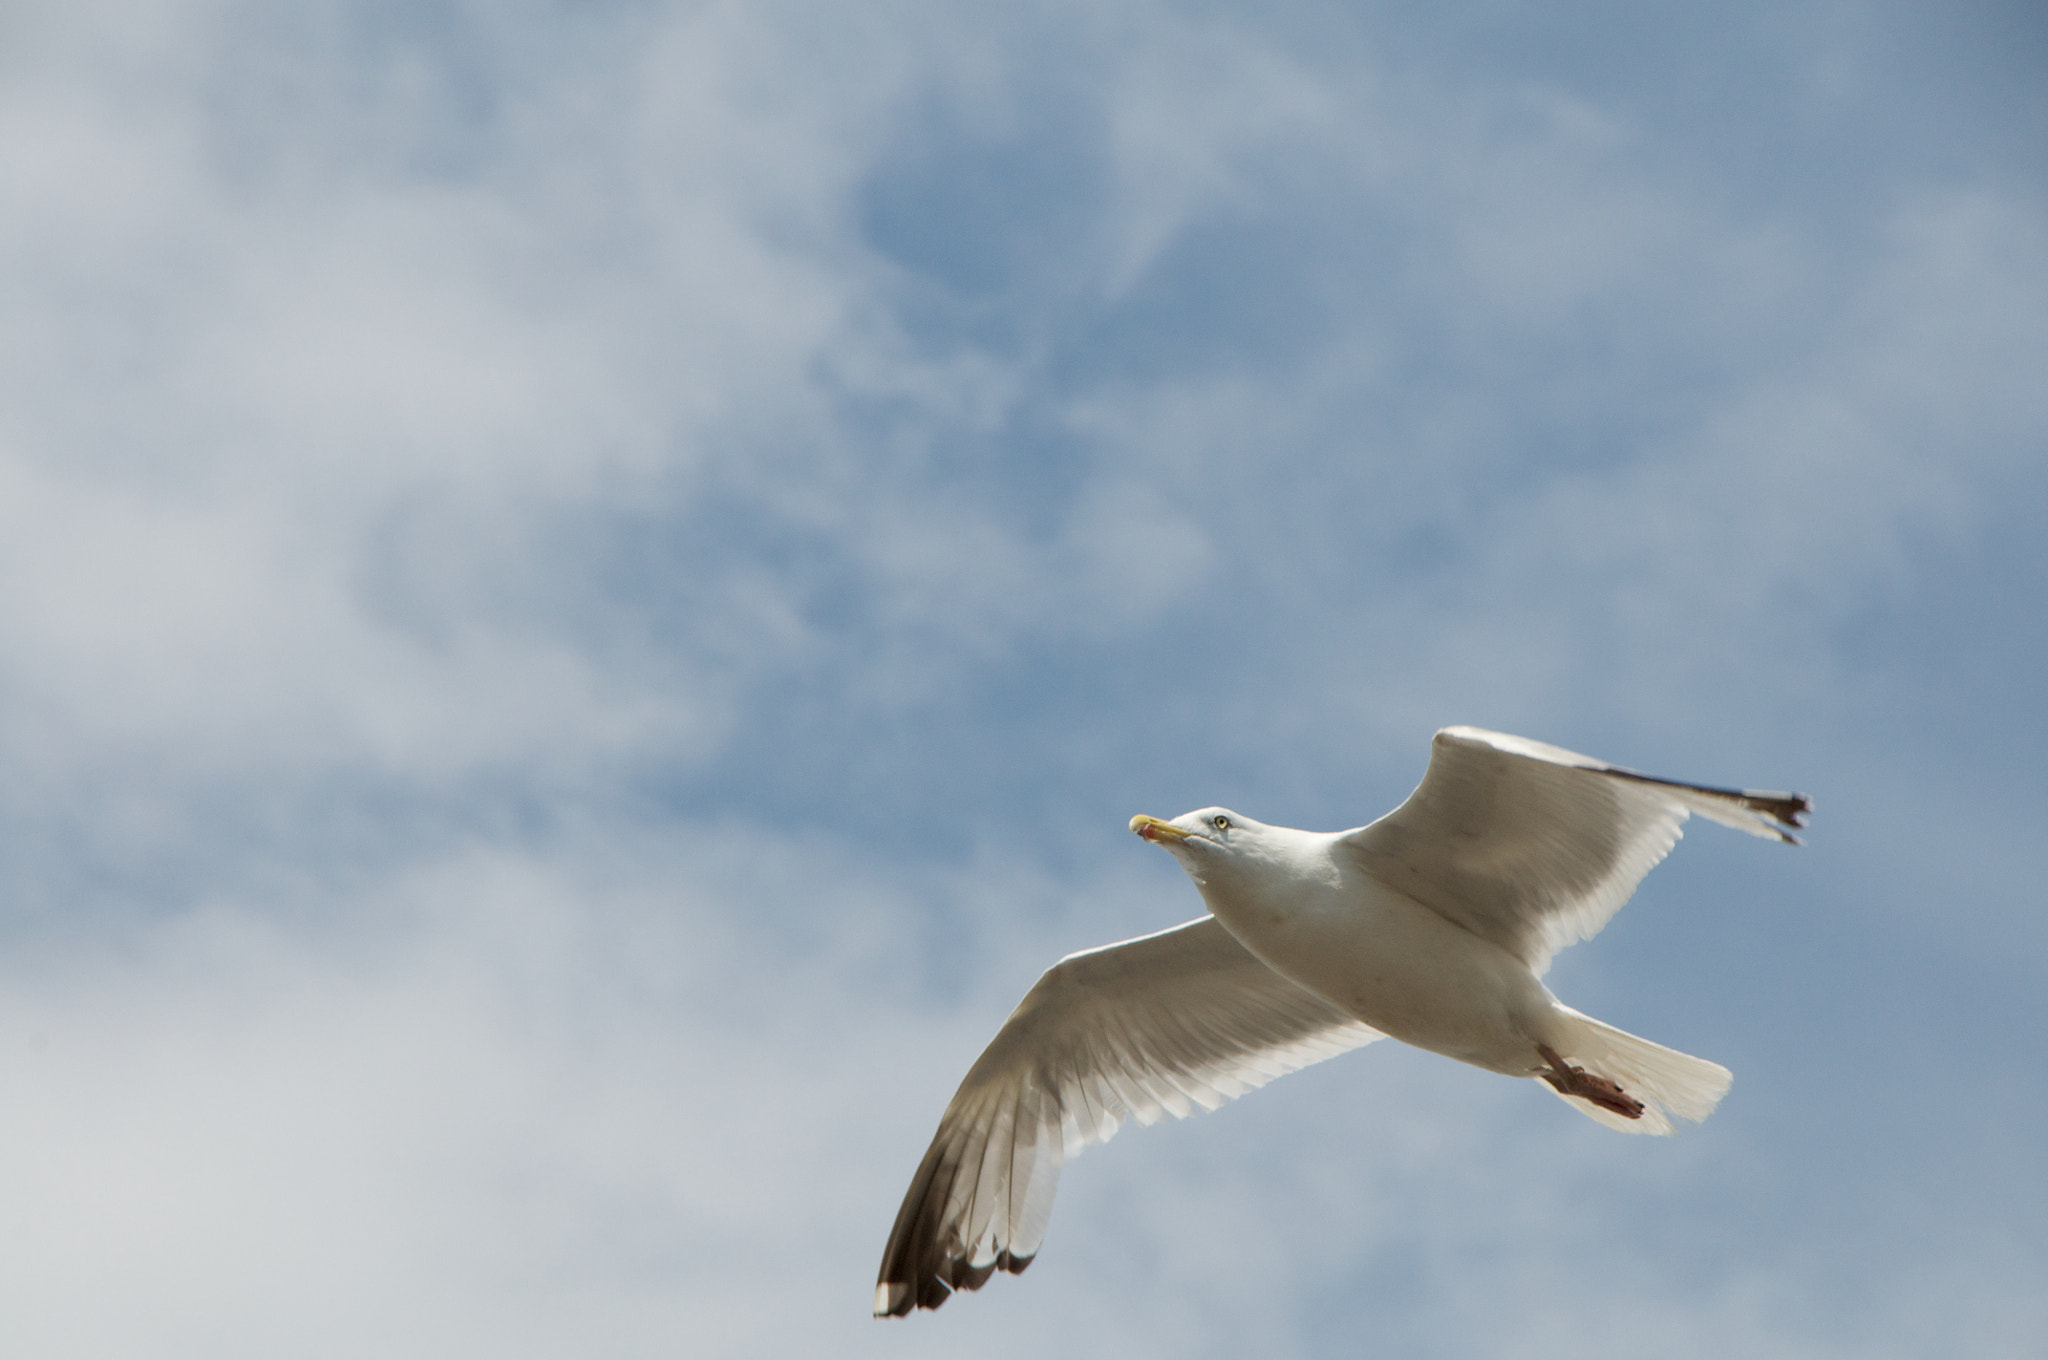 Photograph Seagull in flight by Patrick de Vries on 500px